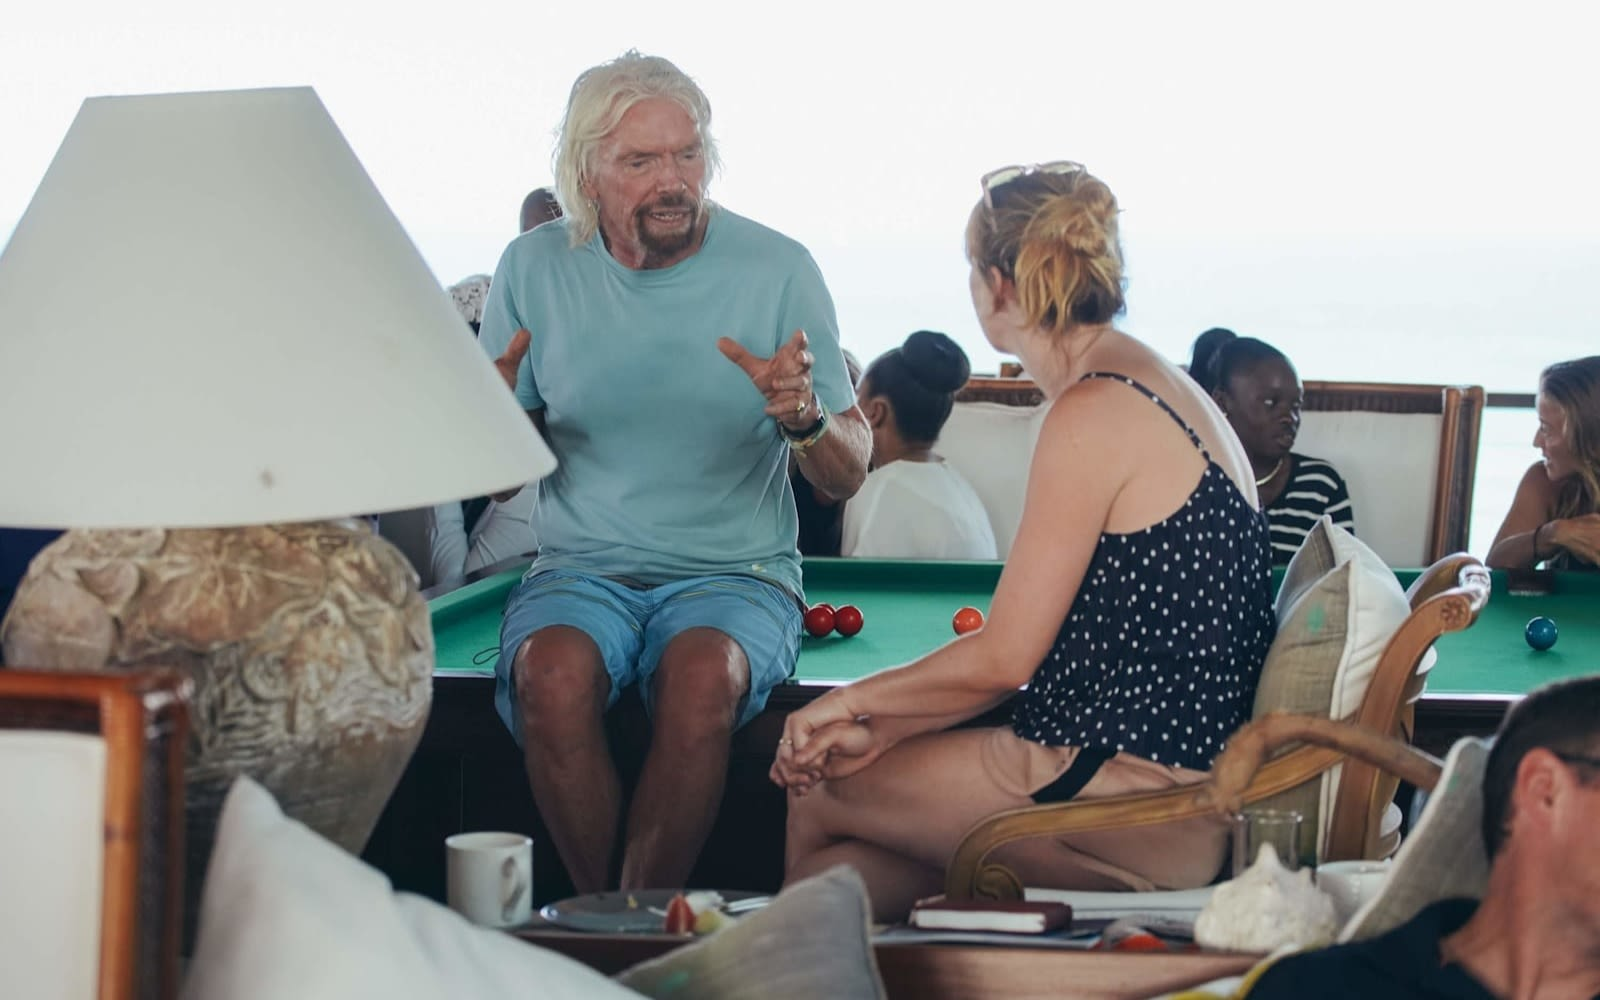 Richard Branson wearing shorts talking to a woman whilst sat on a pool table